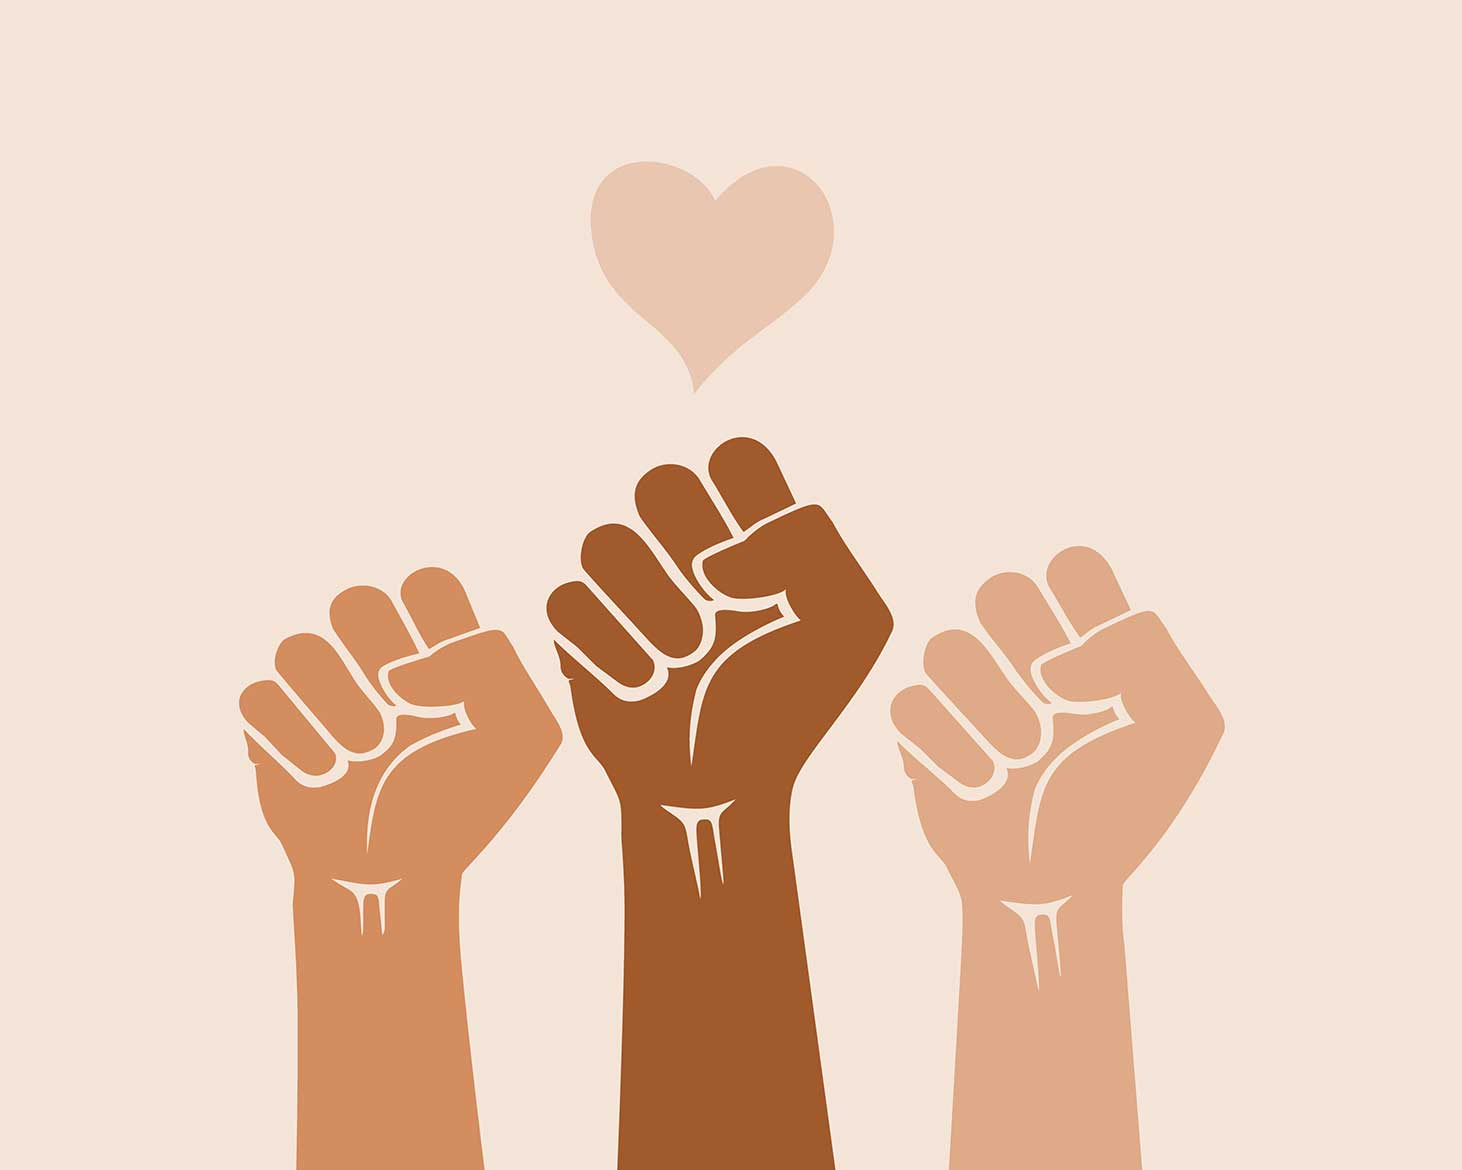 Keshoume-NAACP-charity-giving back-equality-solidarity-black lives matter